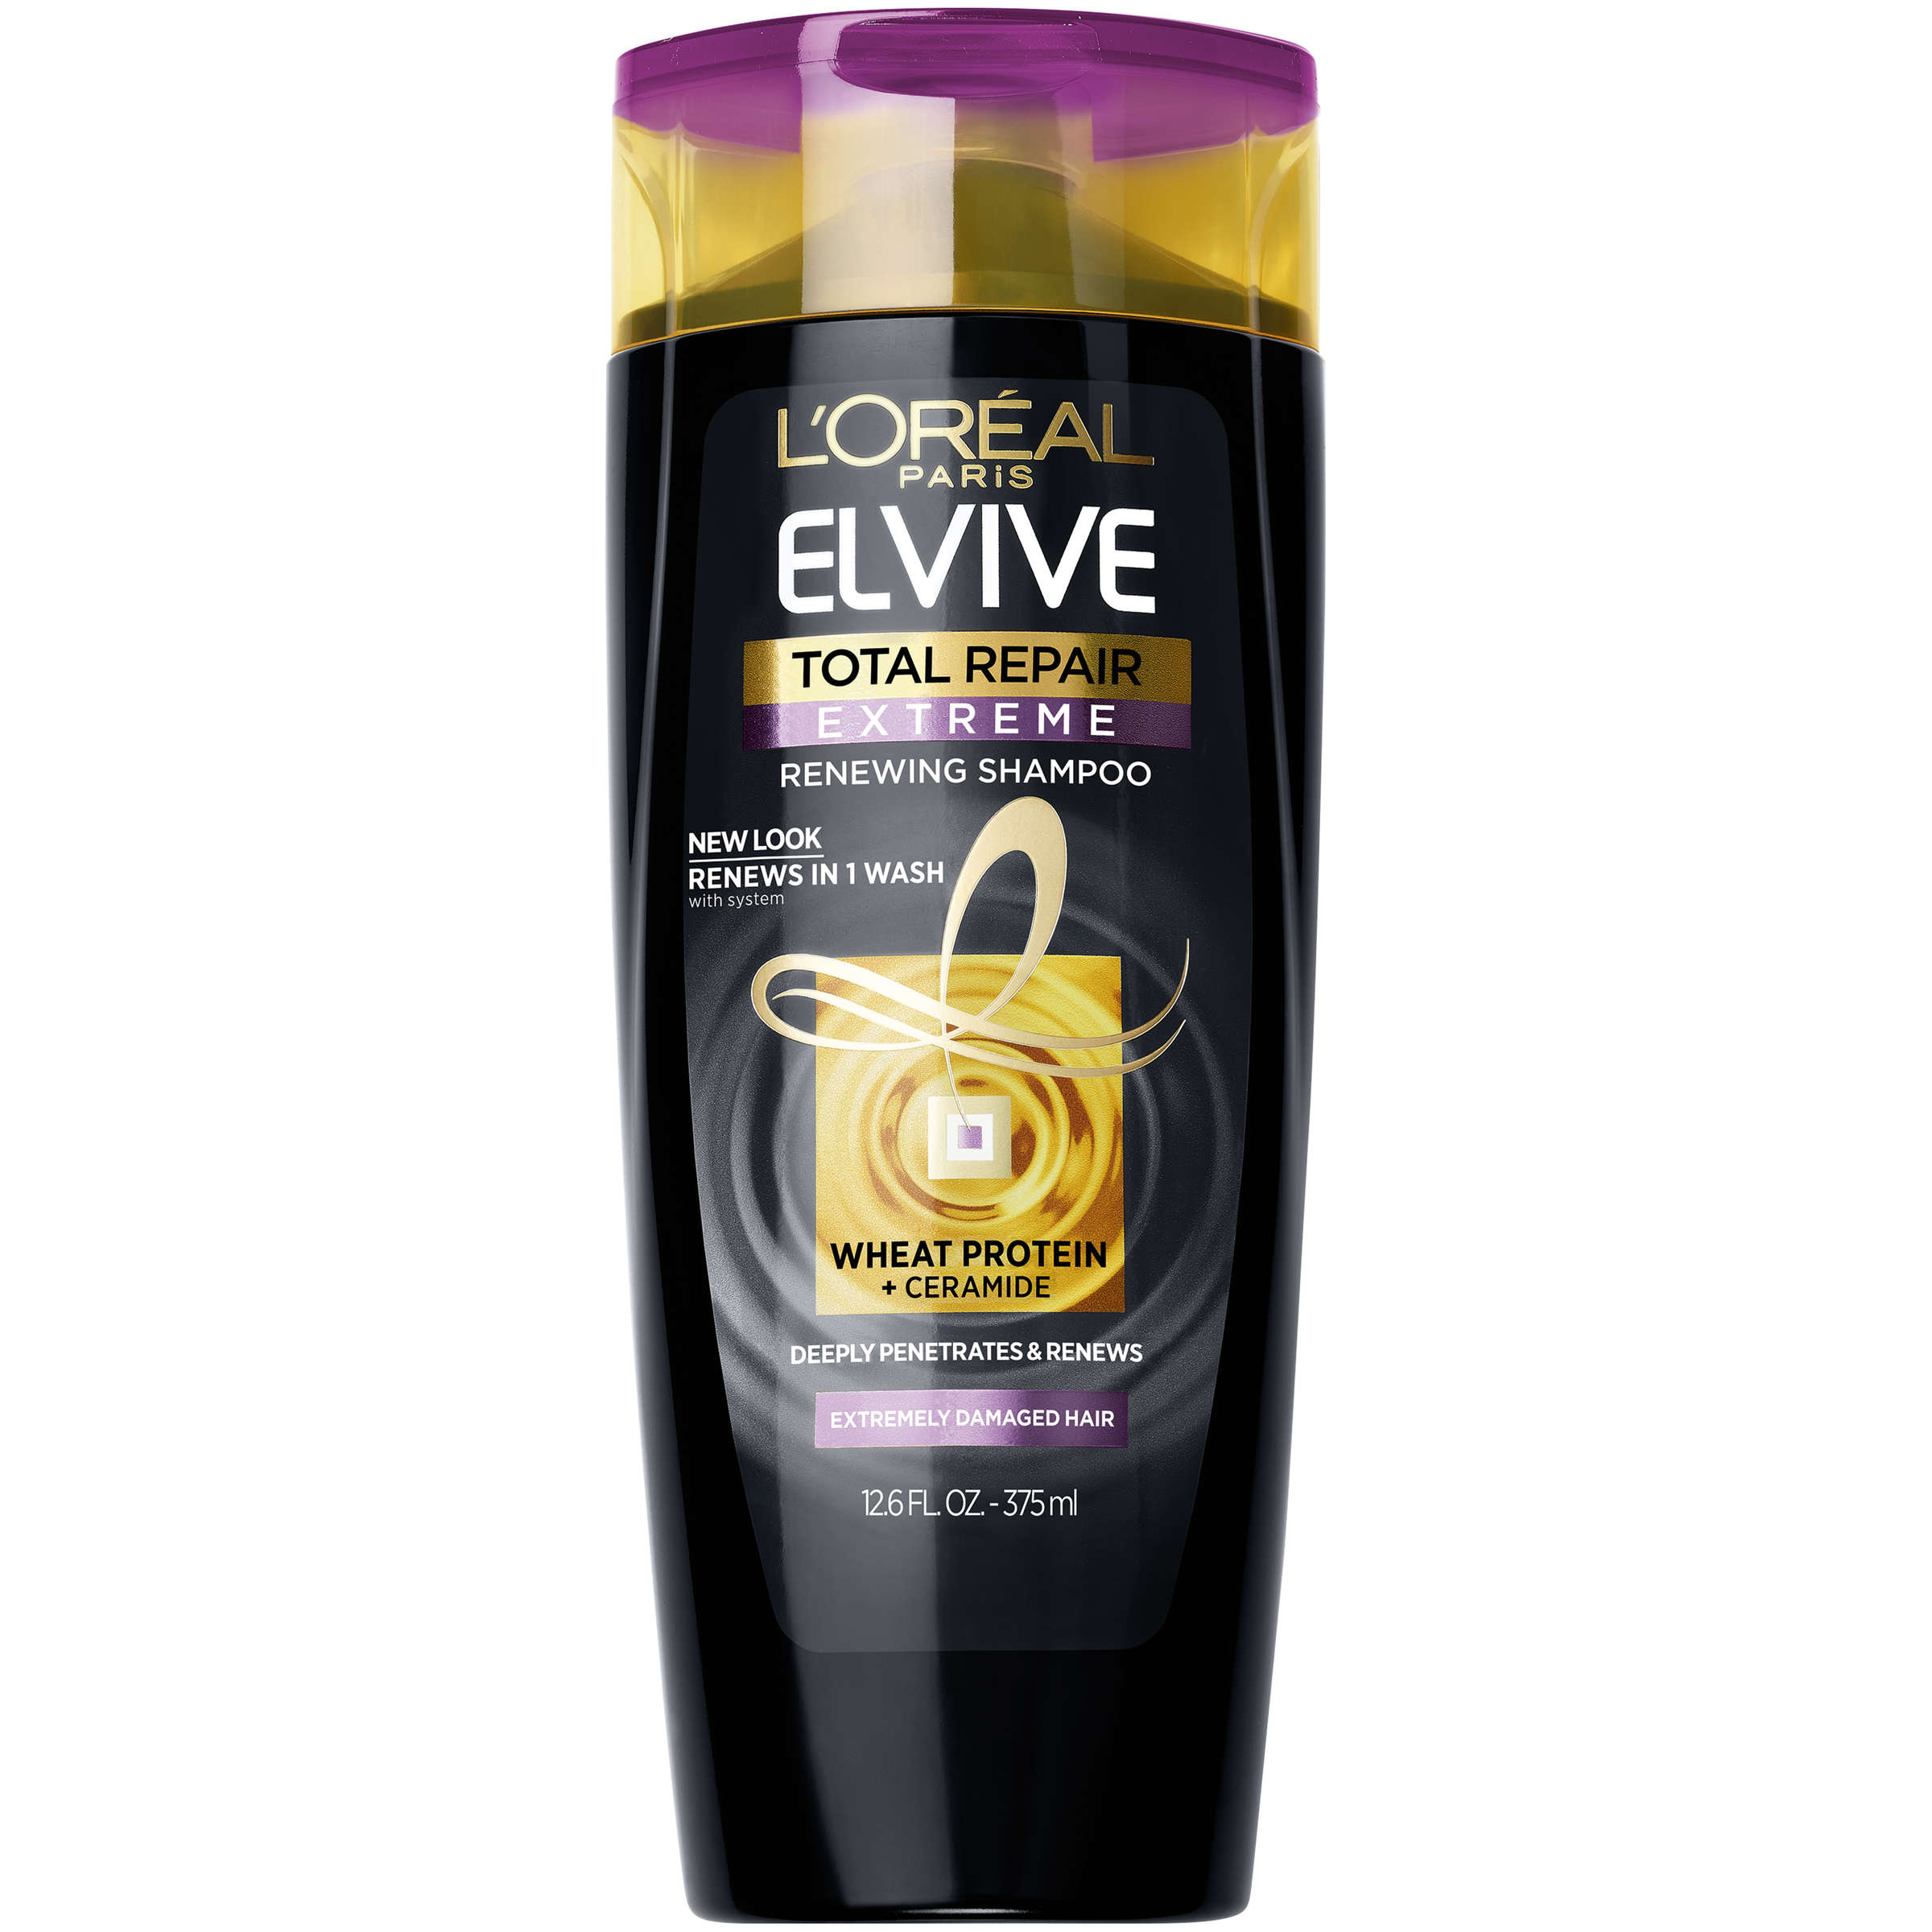 L'Oreal Paris Elvive Total Repair Extreme Renewing Shampoo 12.6 FL OZ